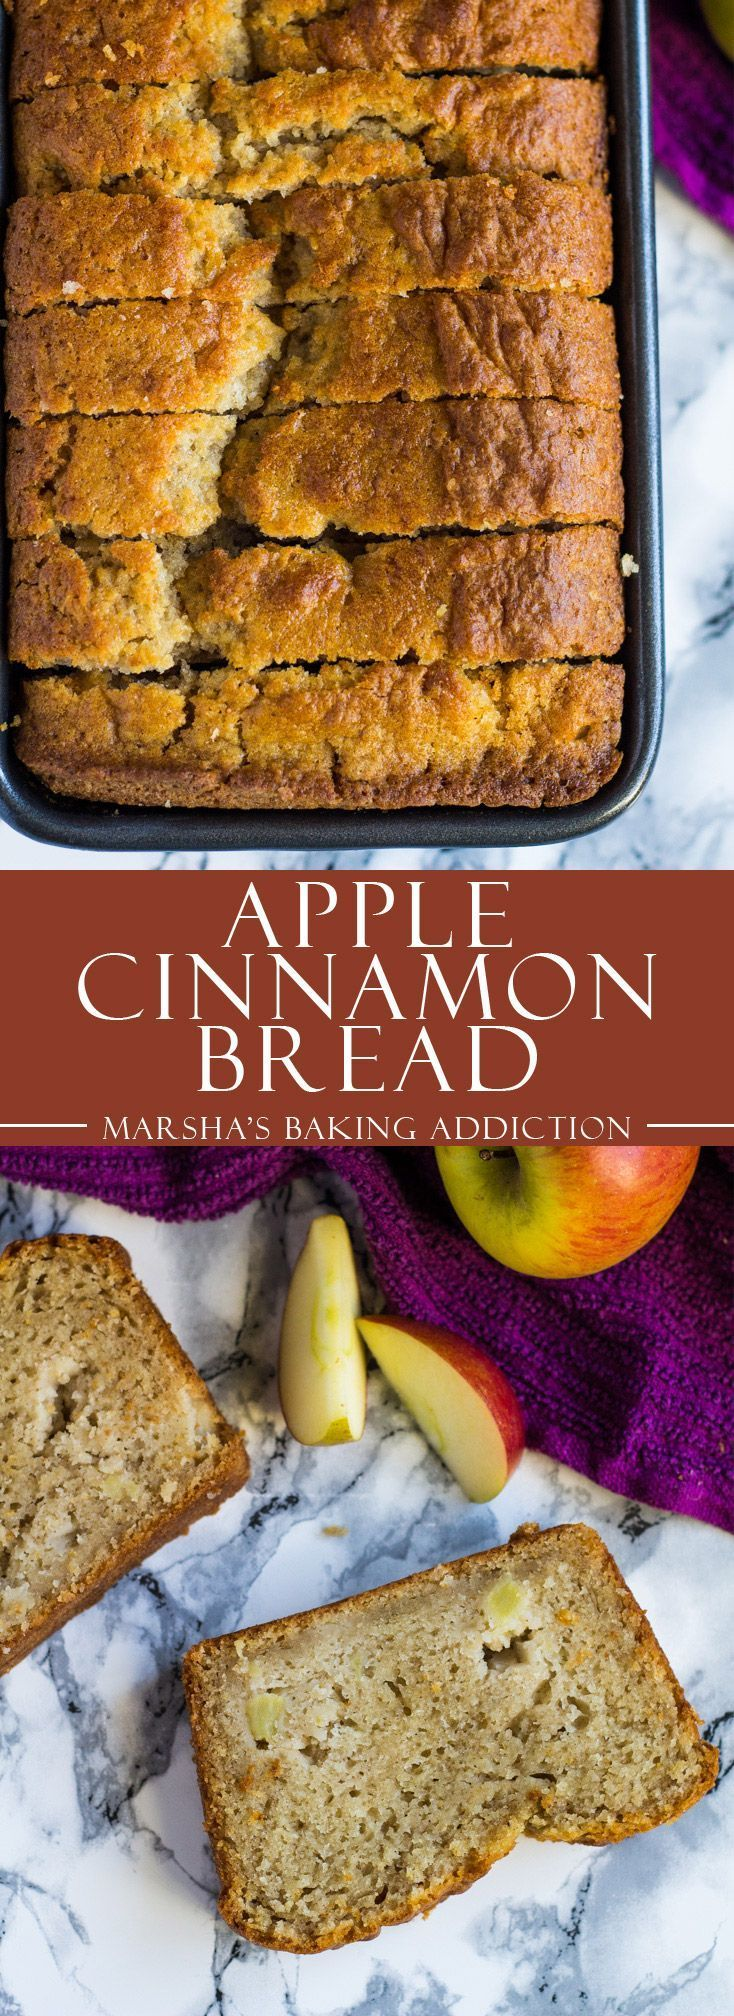 Apple Cinnamon Bread | http://marshasbakingaddiction.com /marshasbakeblog/